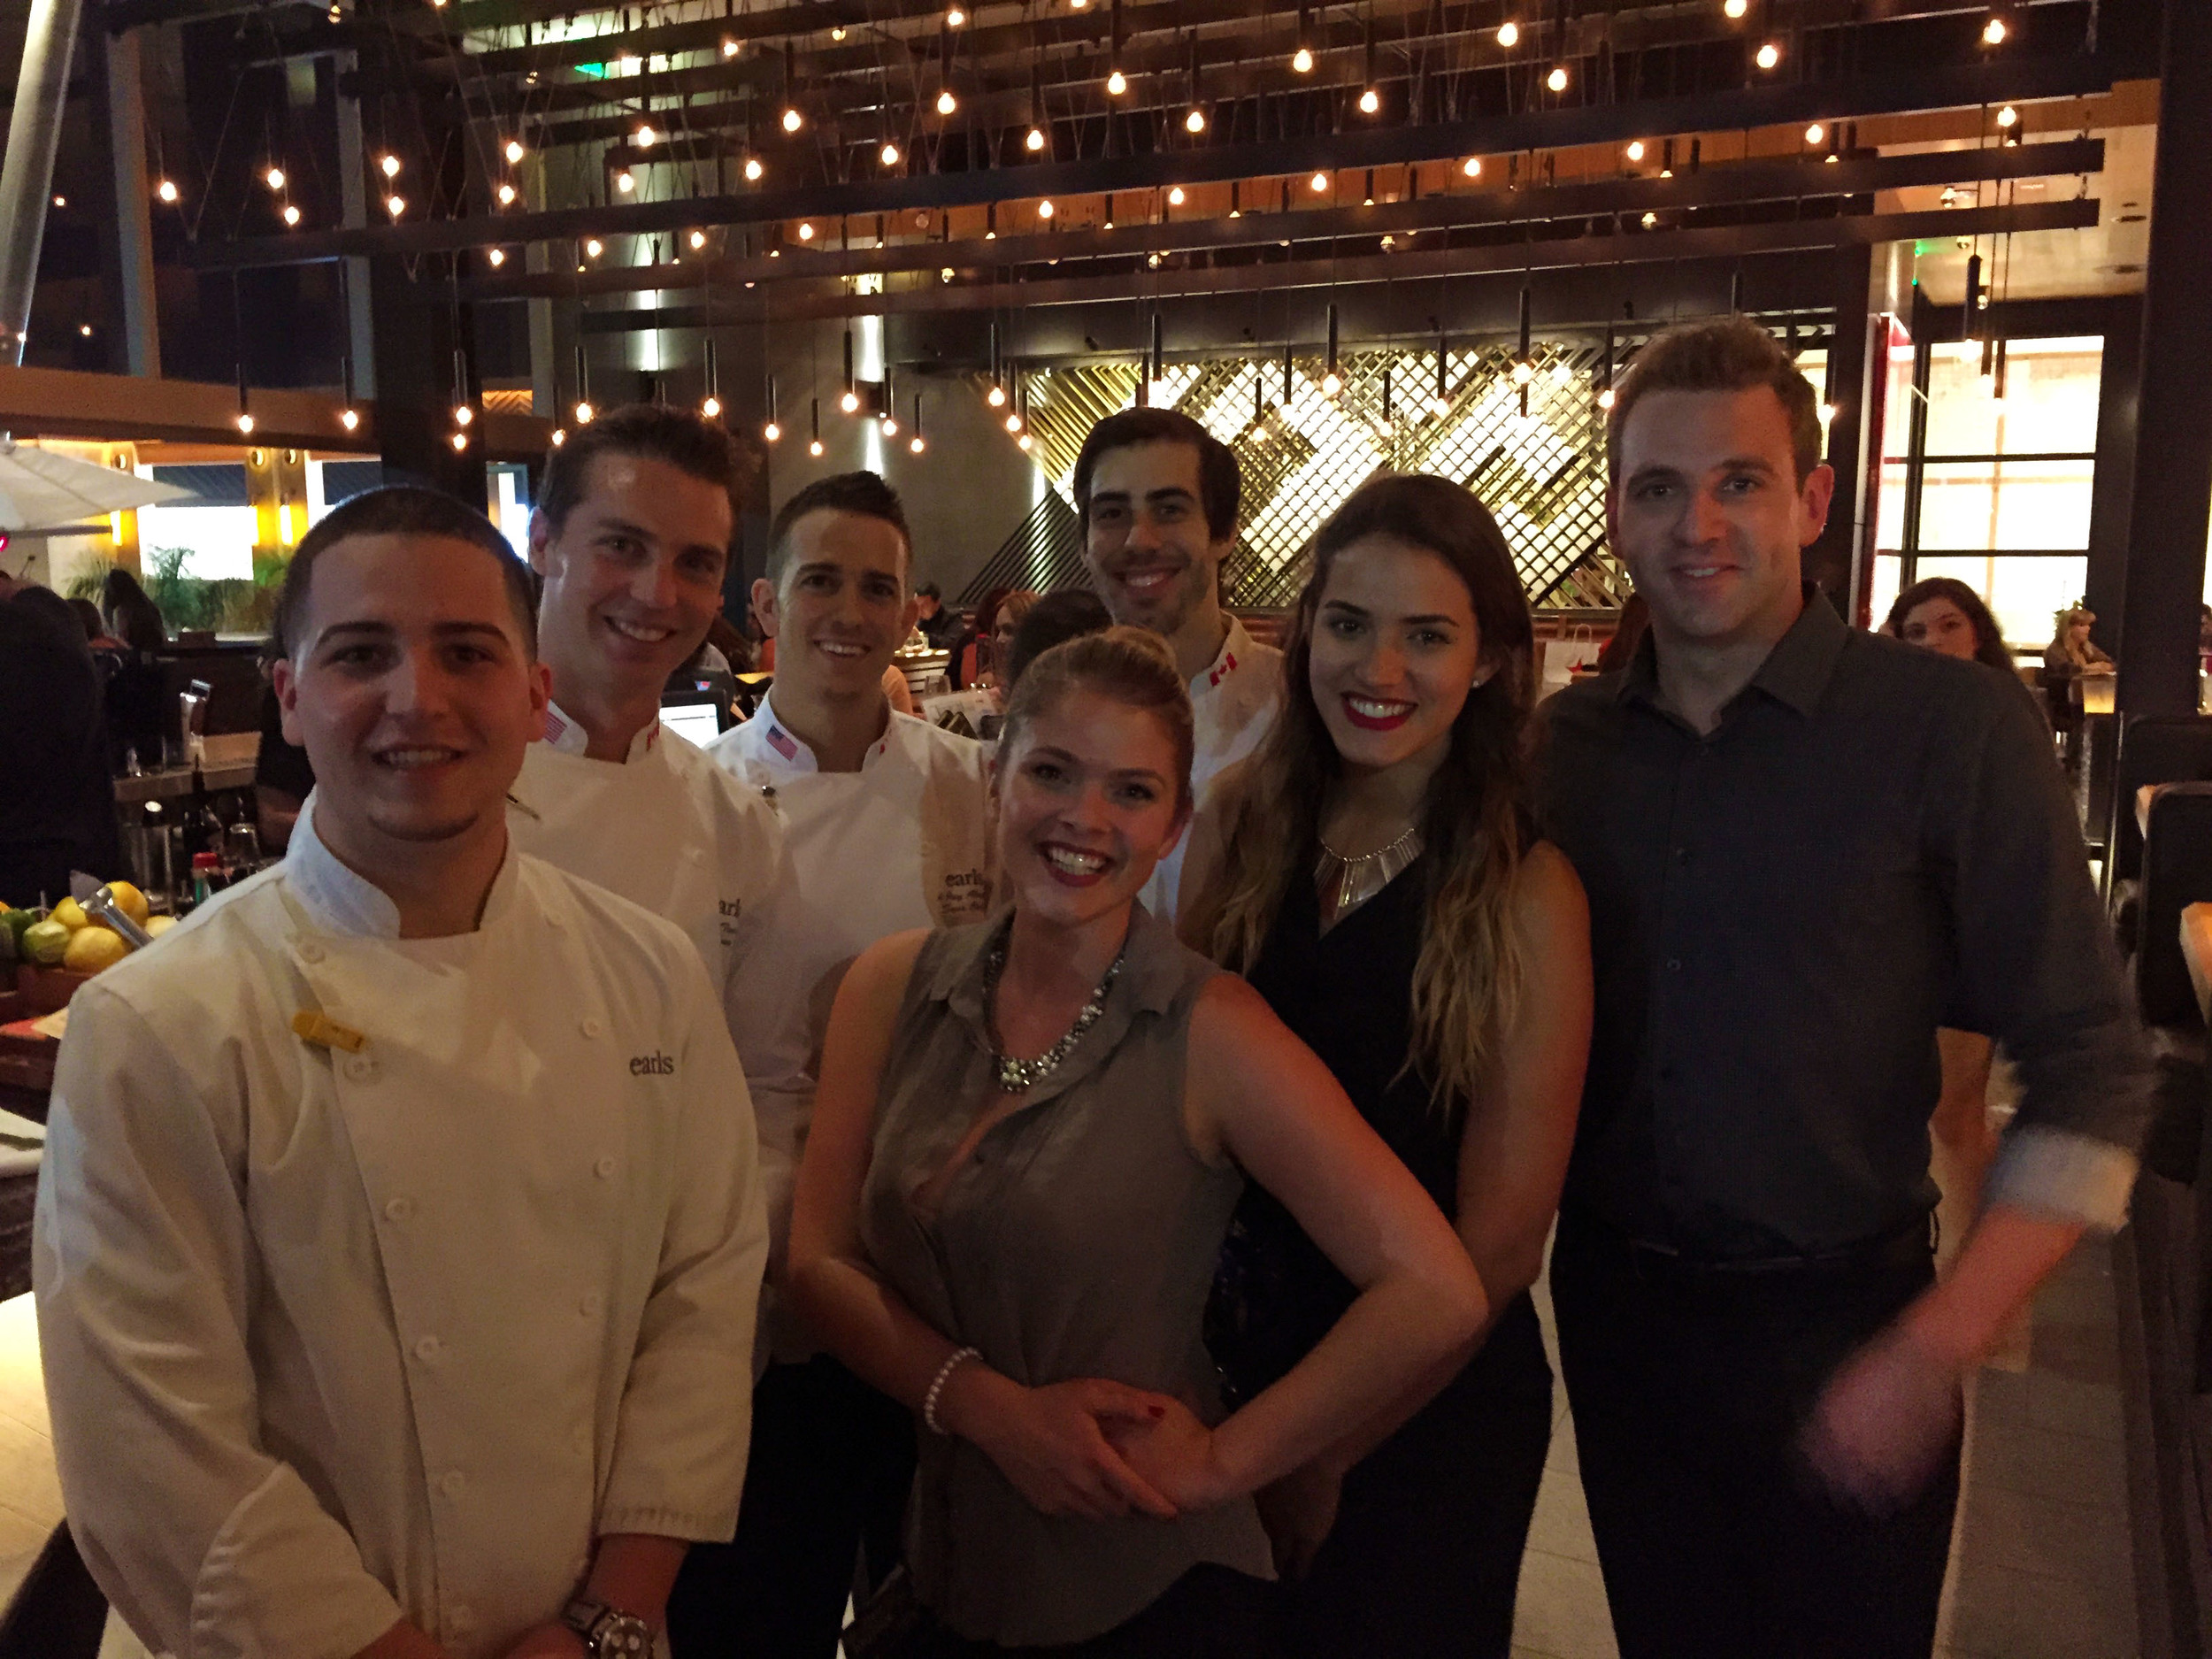 From center: Emily Scott, our server Diana  and Andrew Goldsmith (and some of the chefs)